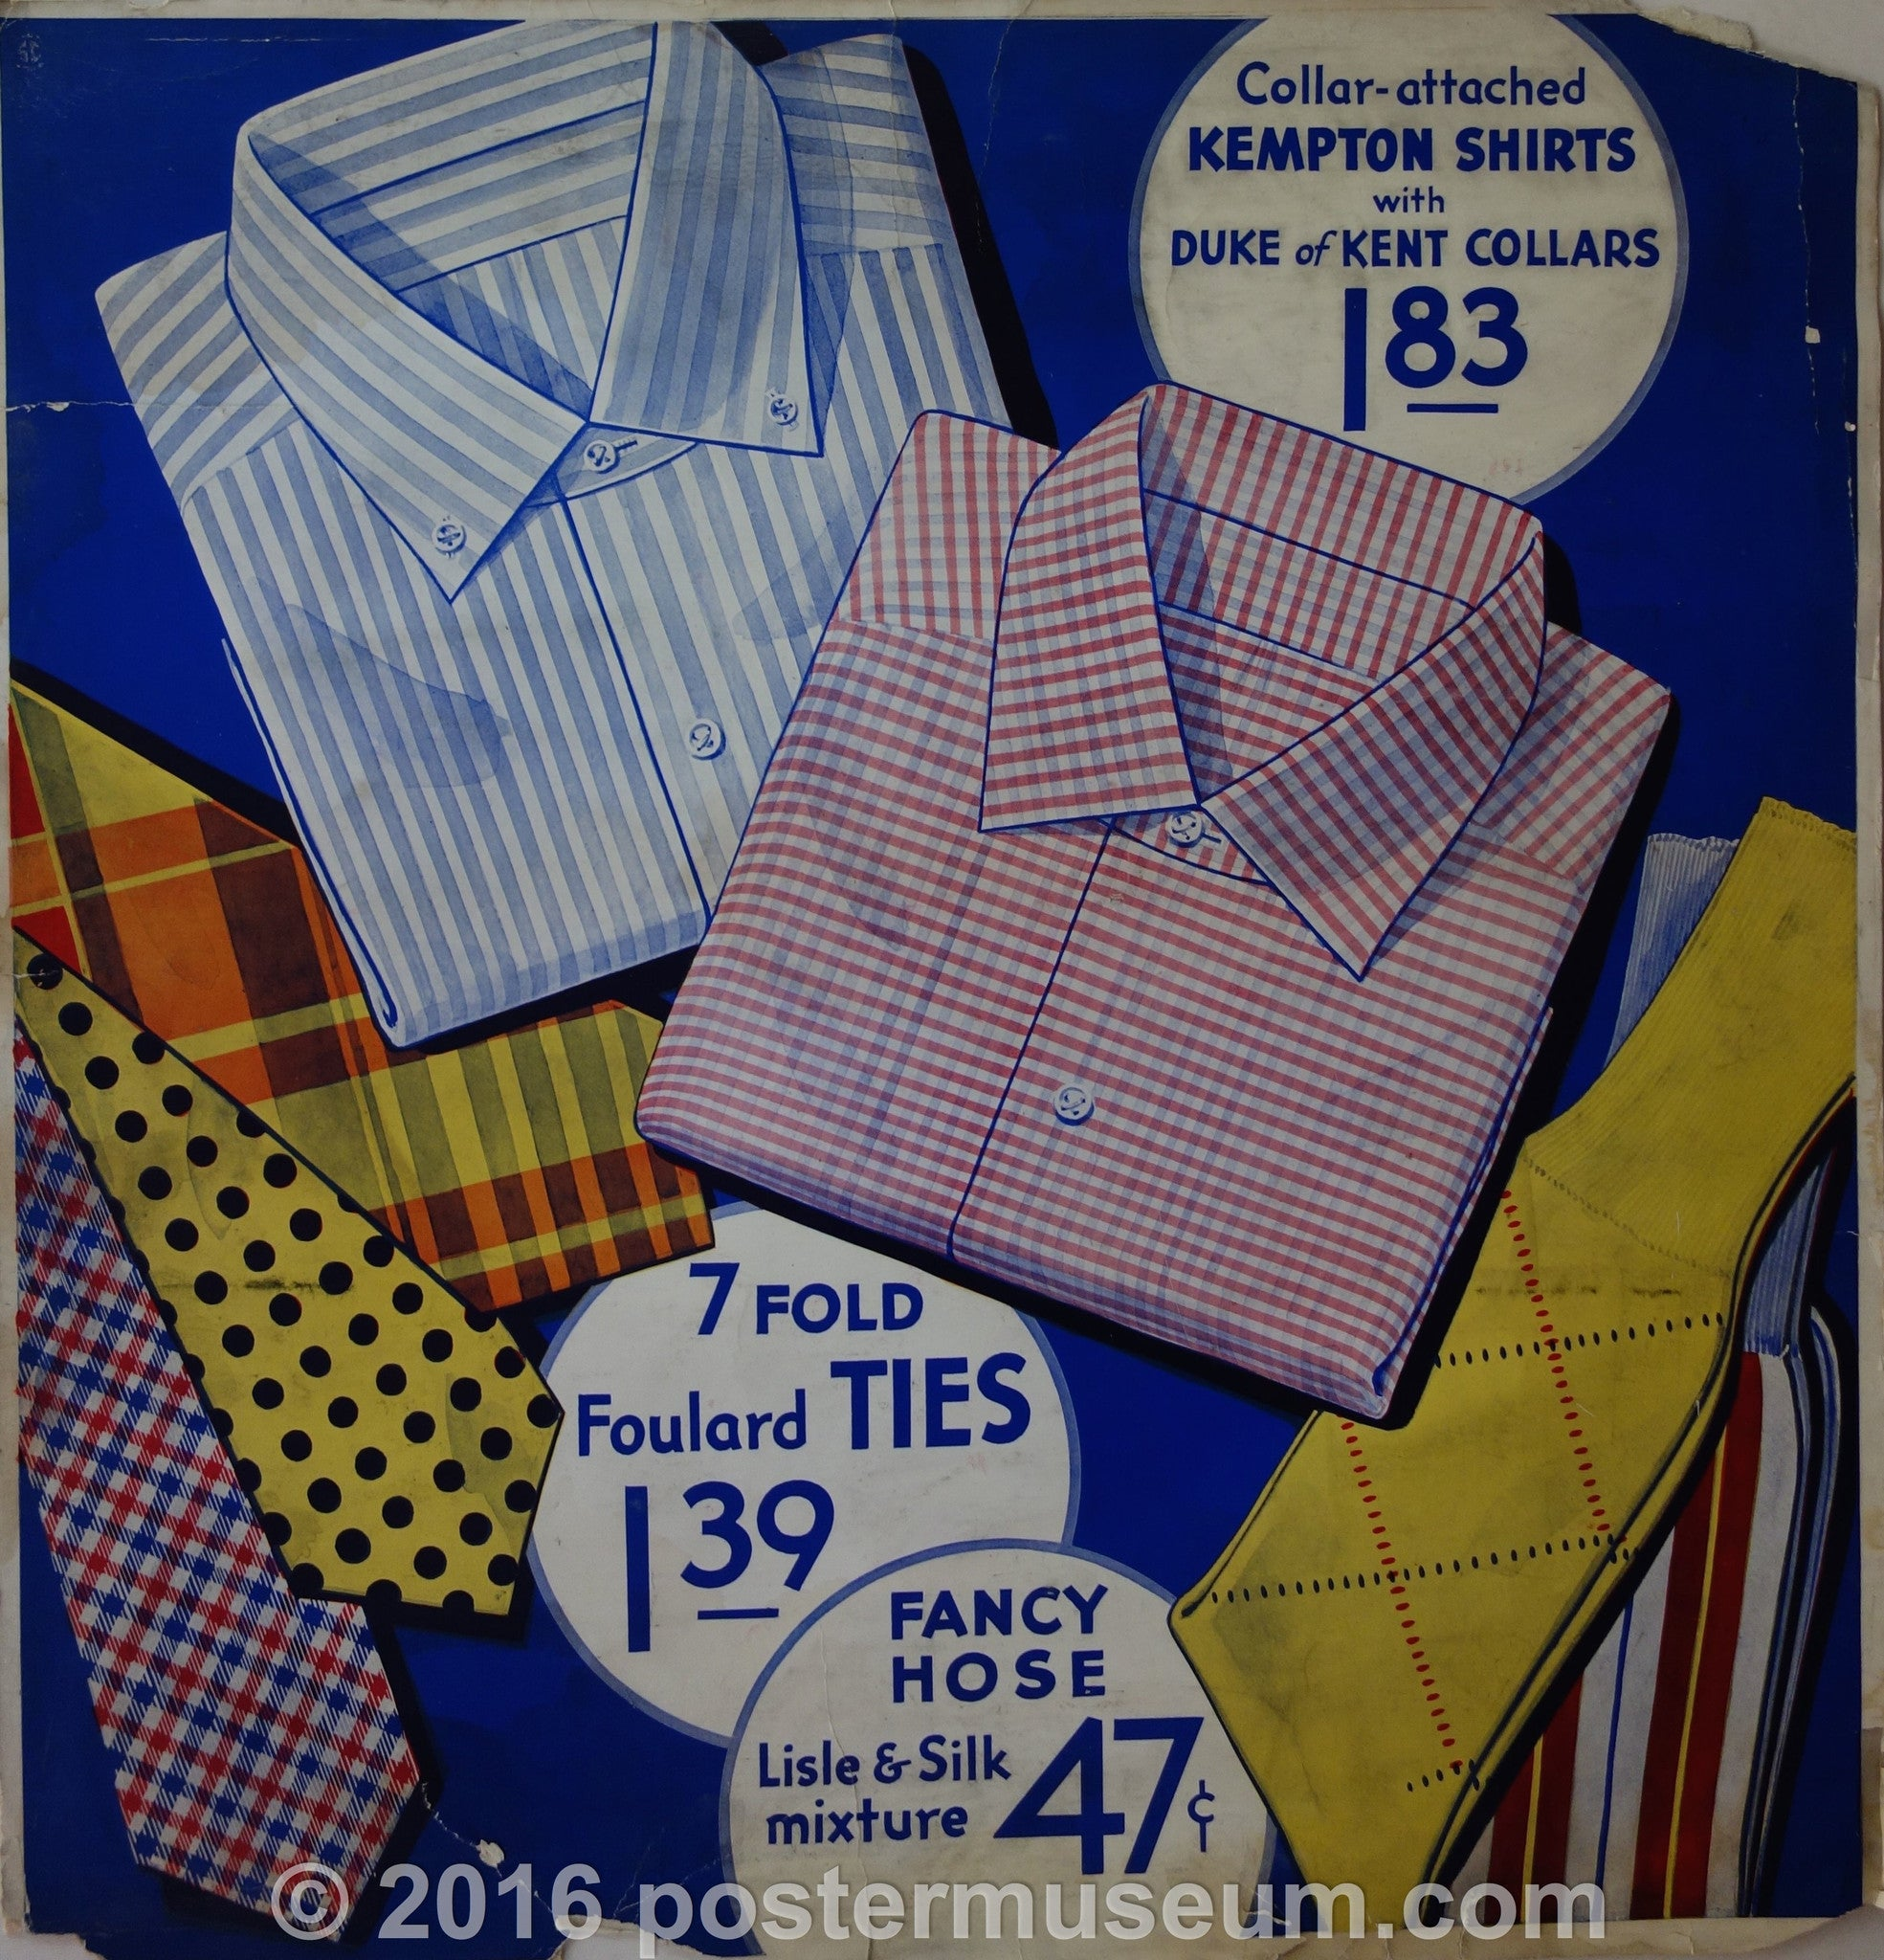 Collar-attached Kempton Shirts with Duke of Kent Collars